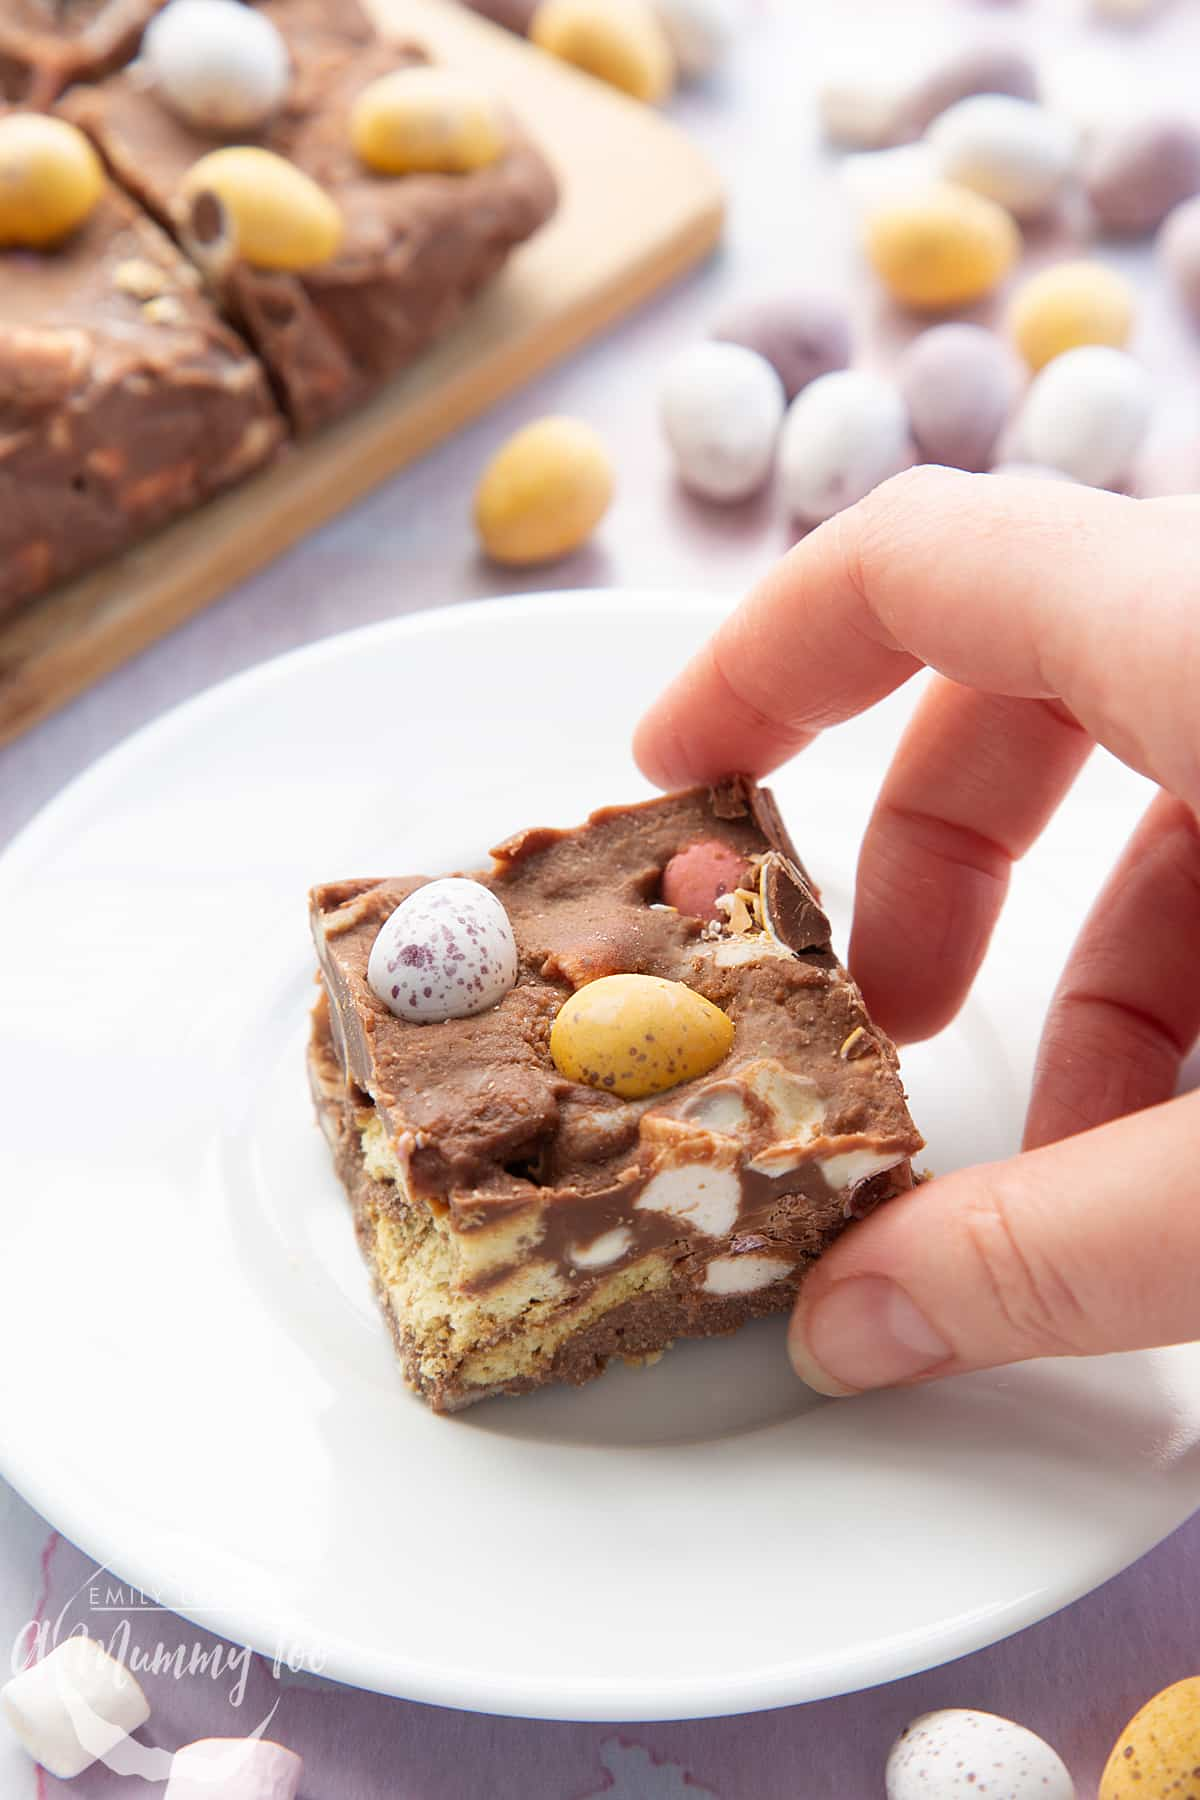 A piece of Mini Egg rocky road on a small white plate. A hand reaches to take it.